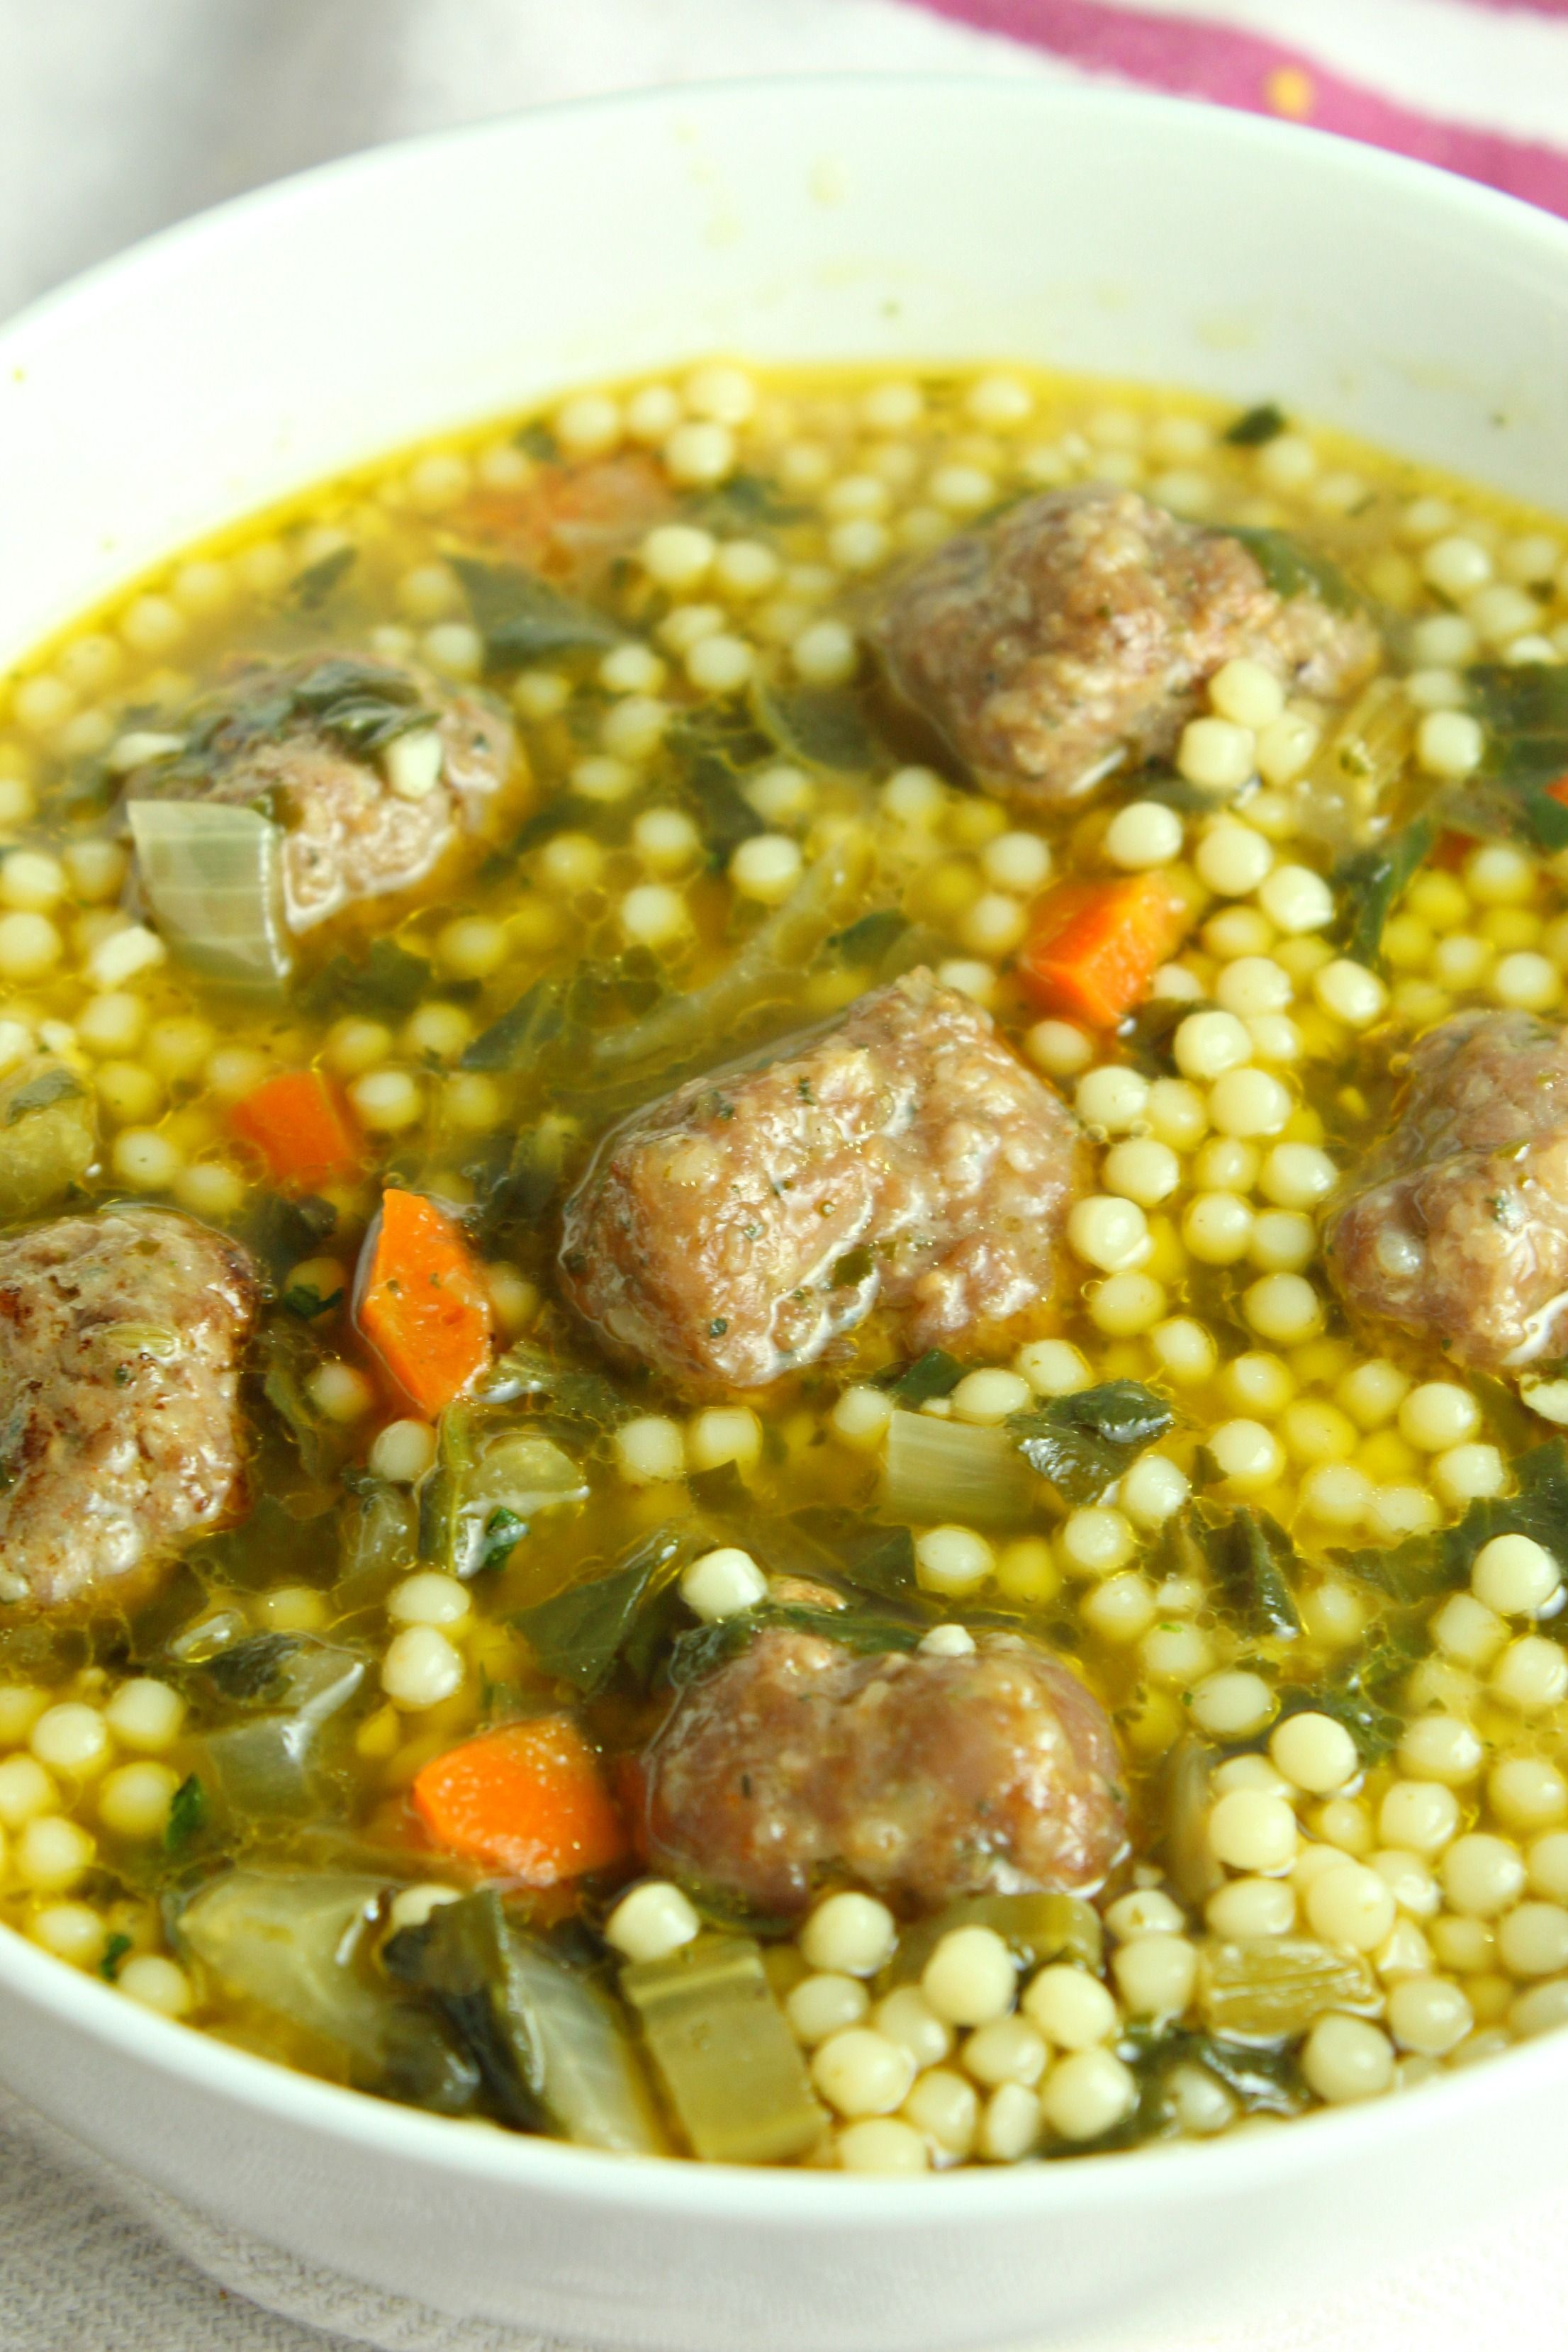 Italian Wedding Soup!